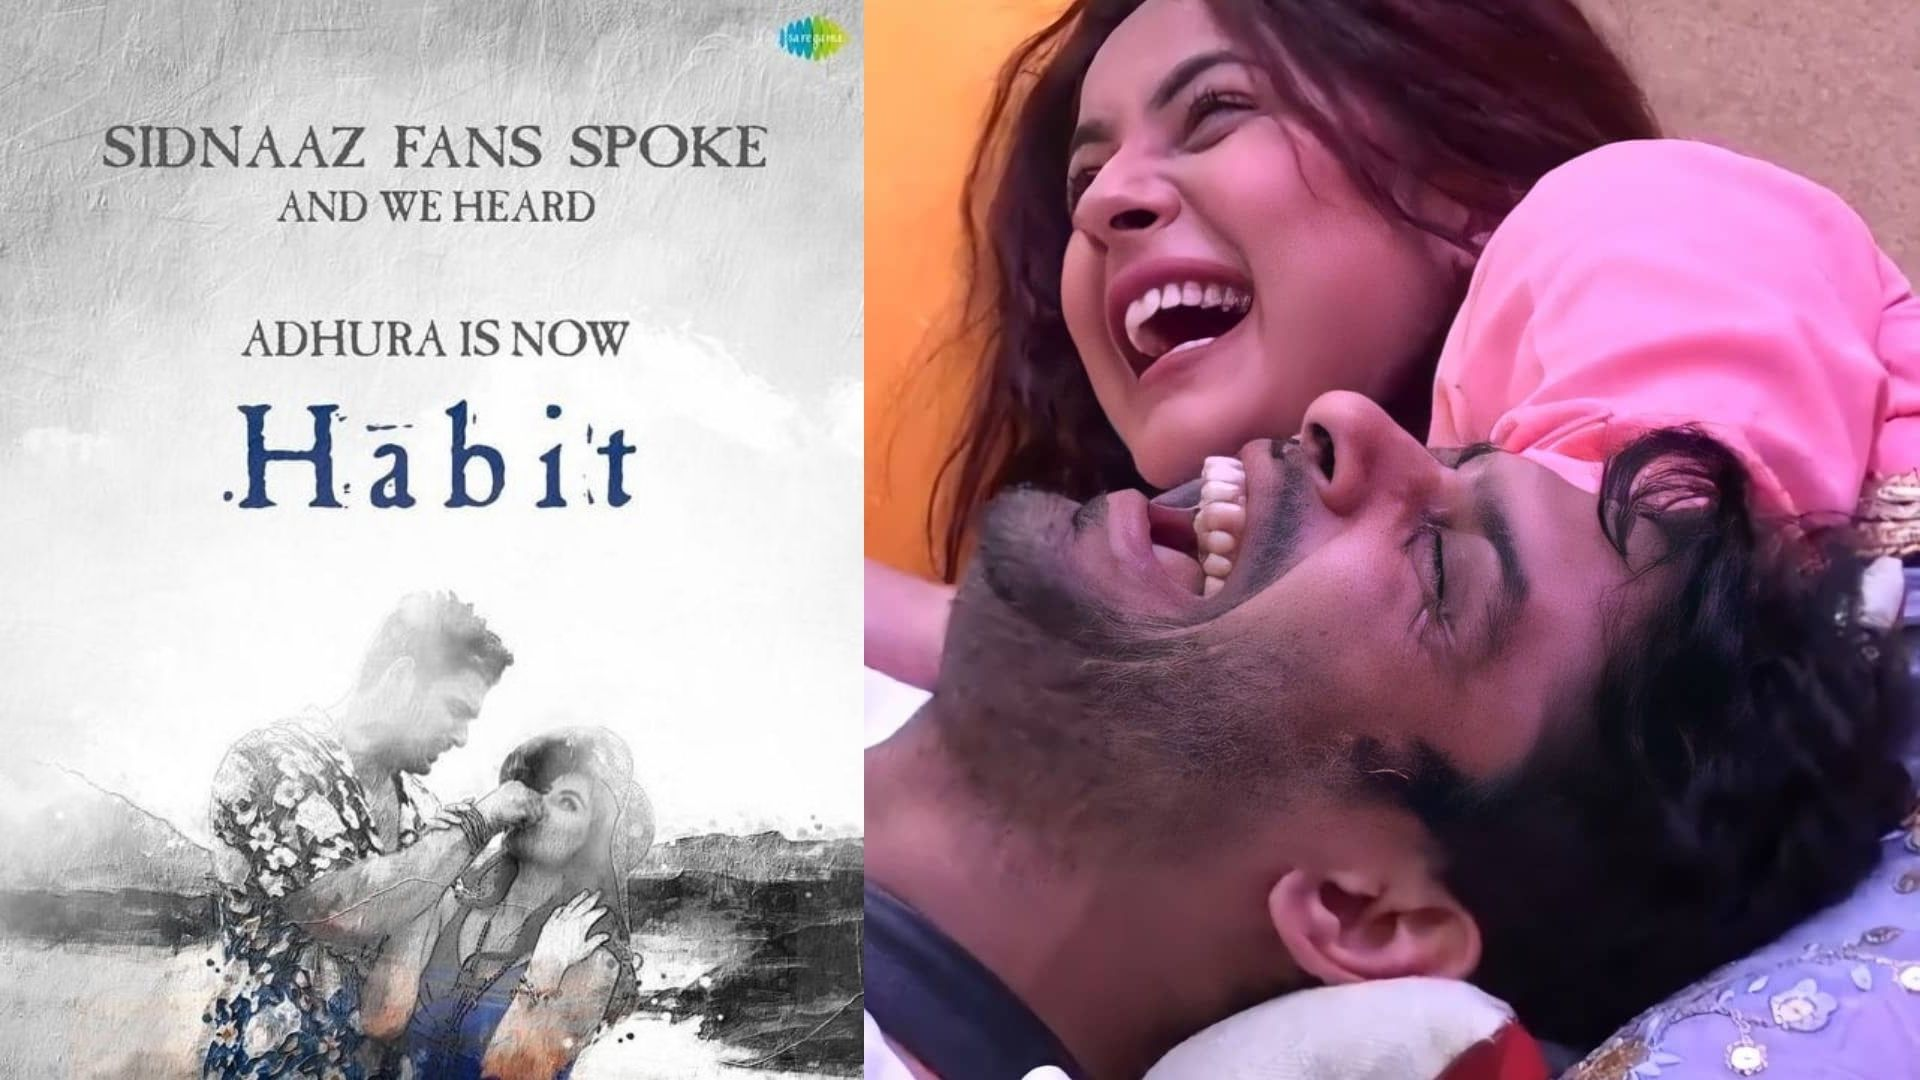 Sidharth Shukla And Shehnaaz Gill's Last Music Video Gets Its Original Name; Adhura Is Now Again Habit For This Reason